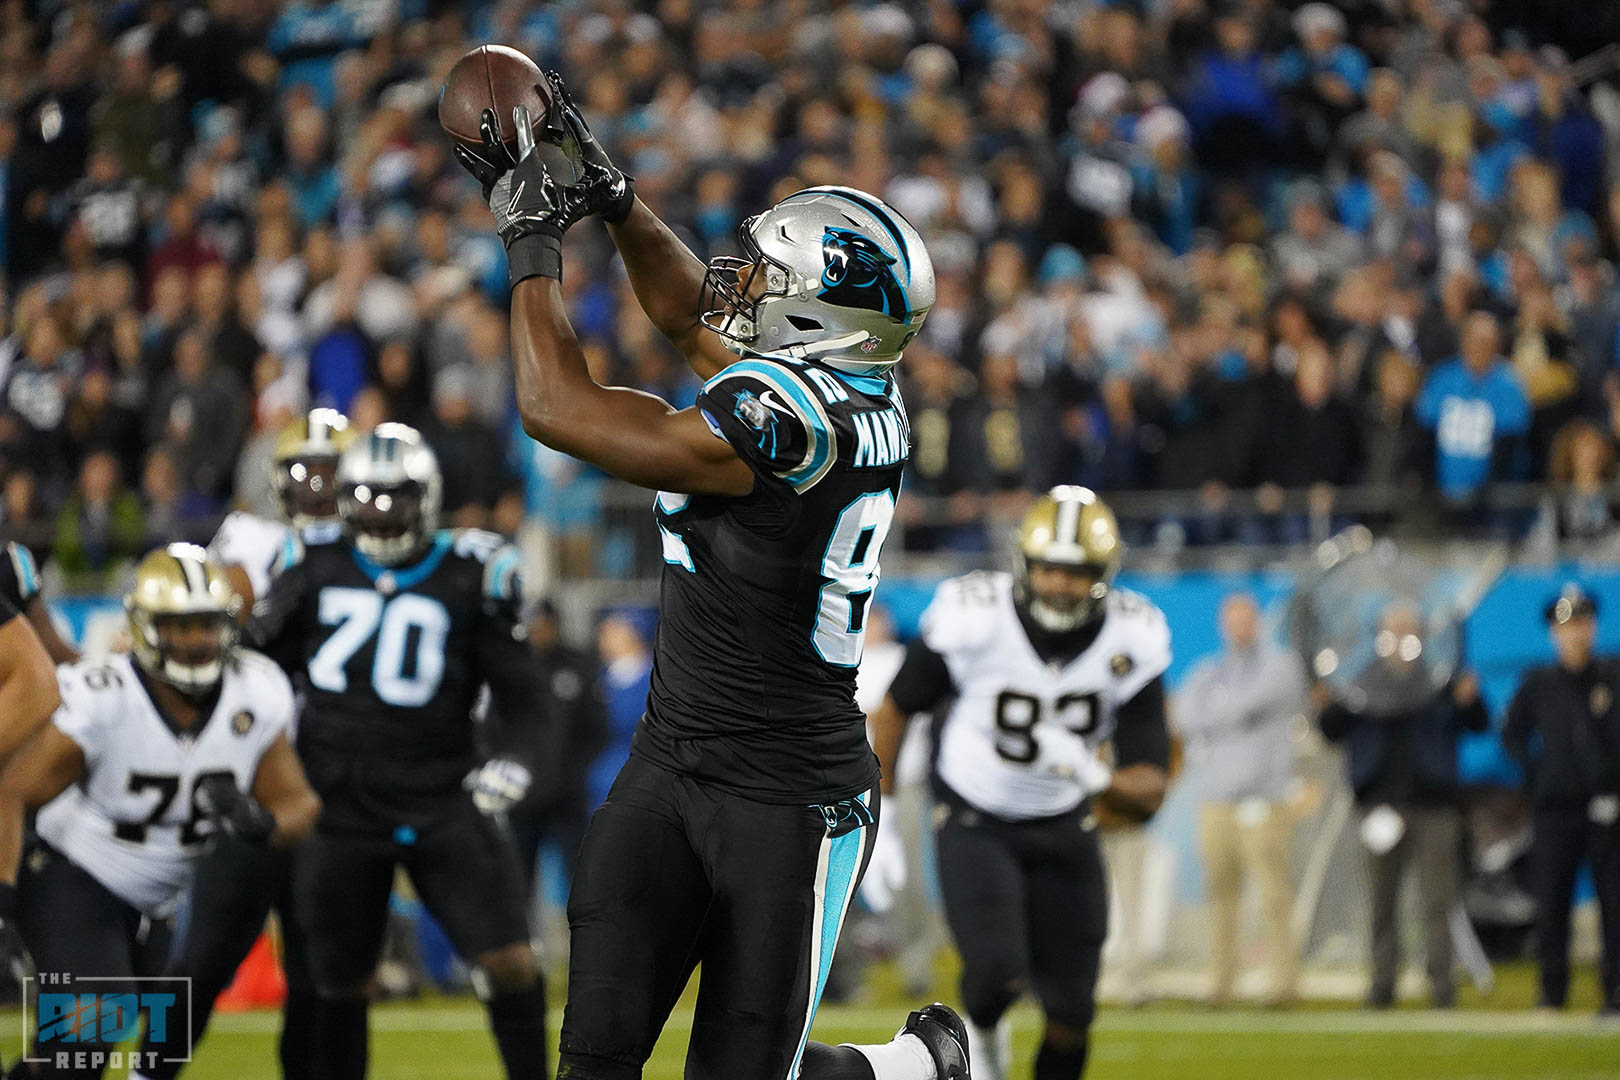 Panthers Ink Manhertz To Two-Year Deal